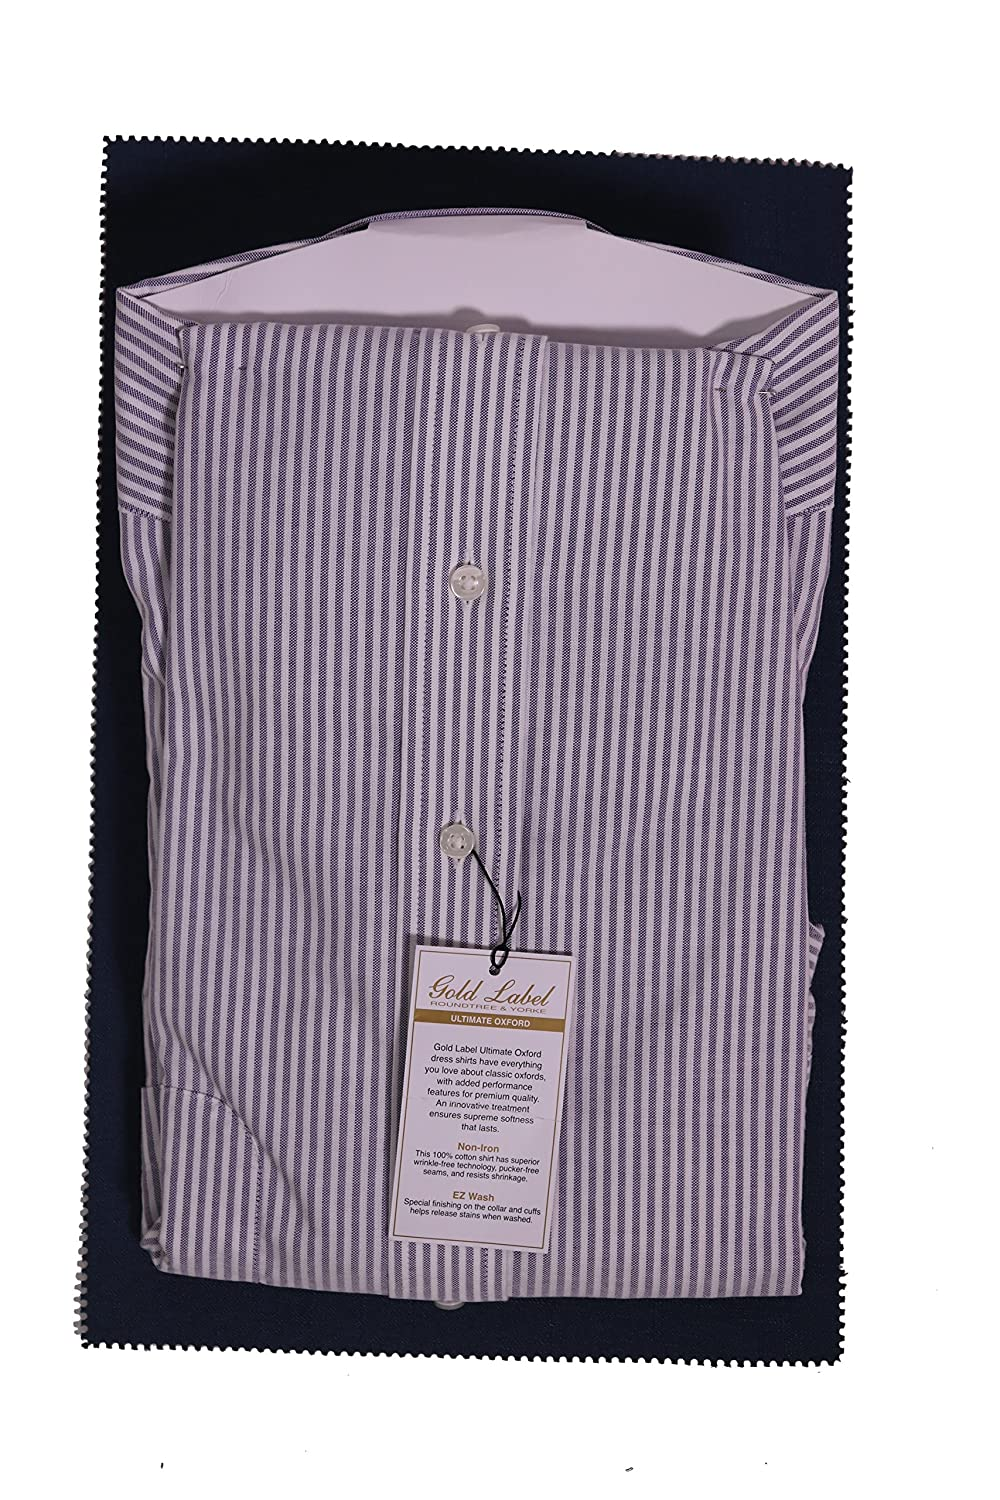 Gold Label Roundtree /& Yorke Non-Iron Regular Full-Fit Button Down Striped Dress Shirt Plum 15.5-33